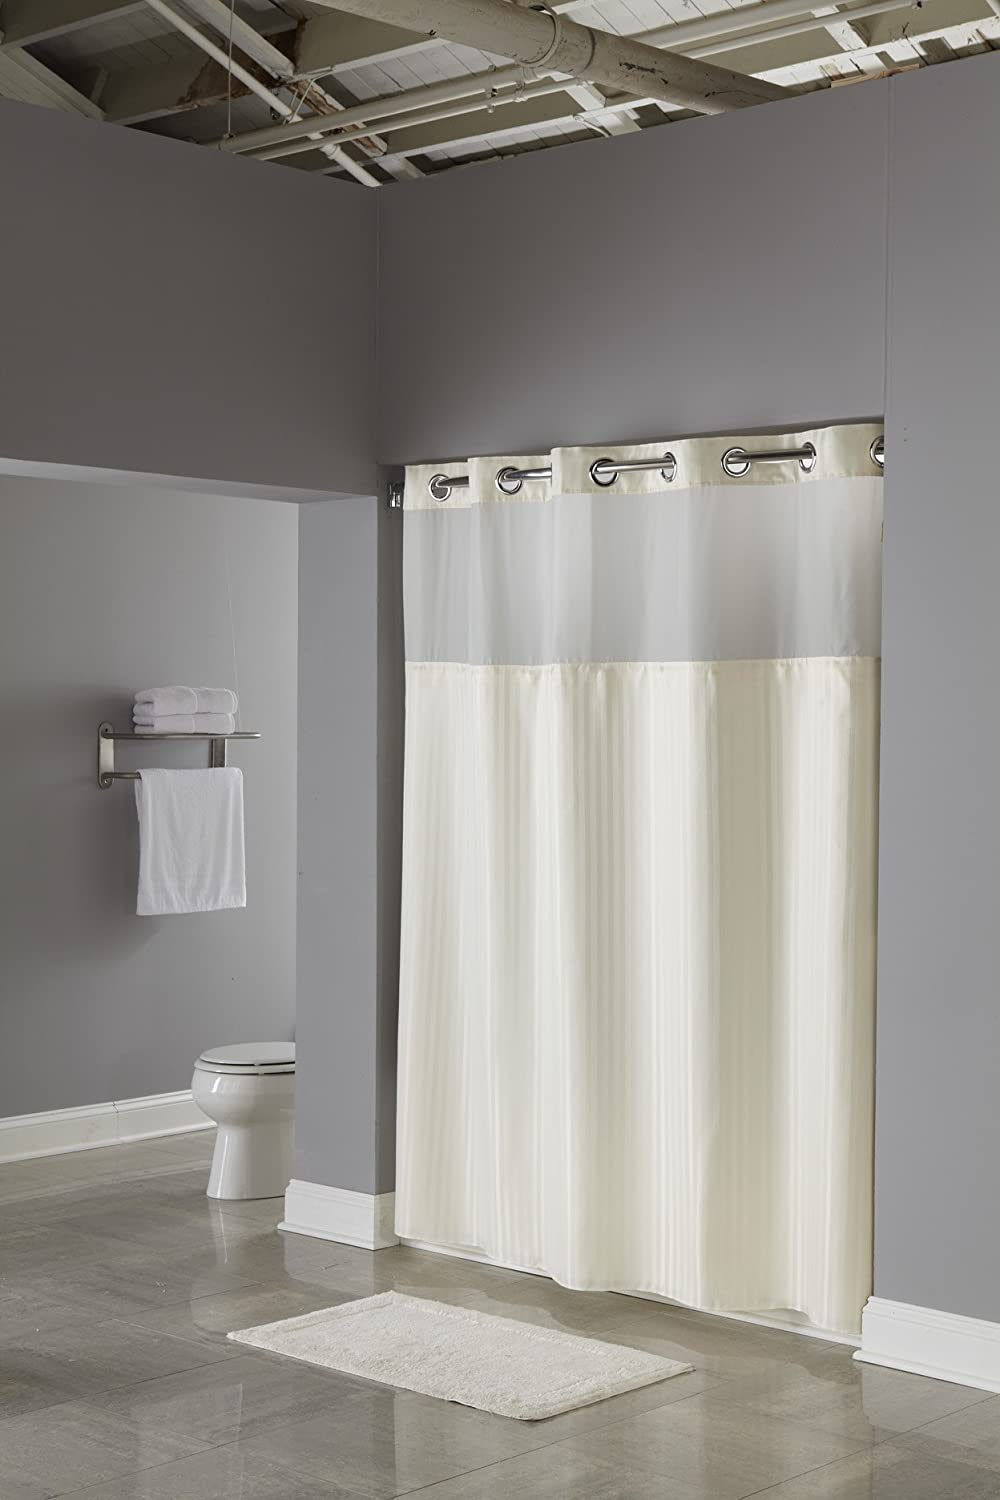 Amazon.com: Hookless RBH53MY307 3-in-1 Shower Curtain, Beige: Home ...